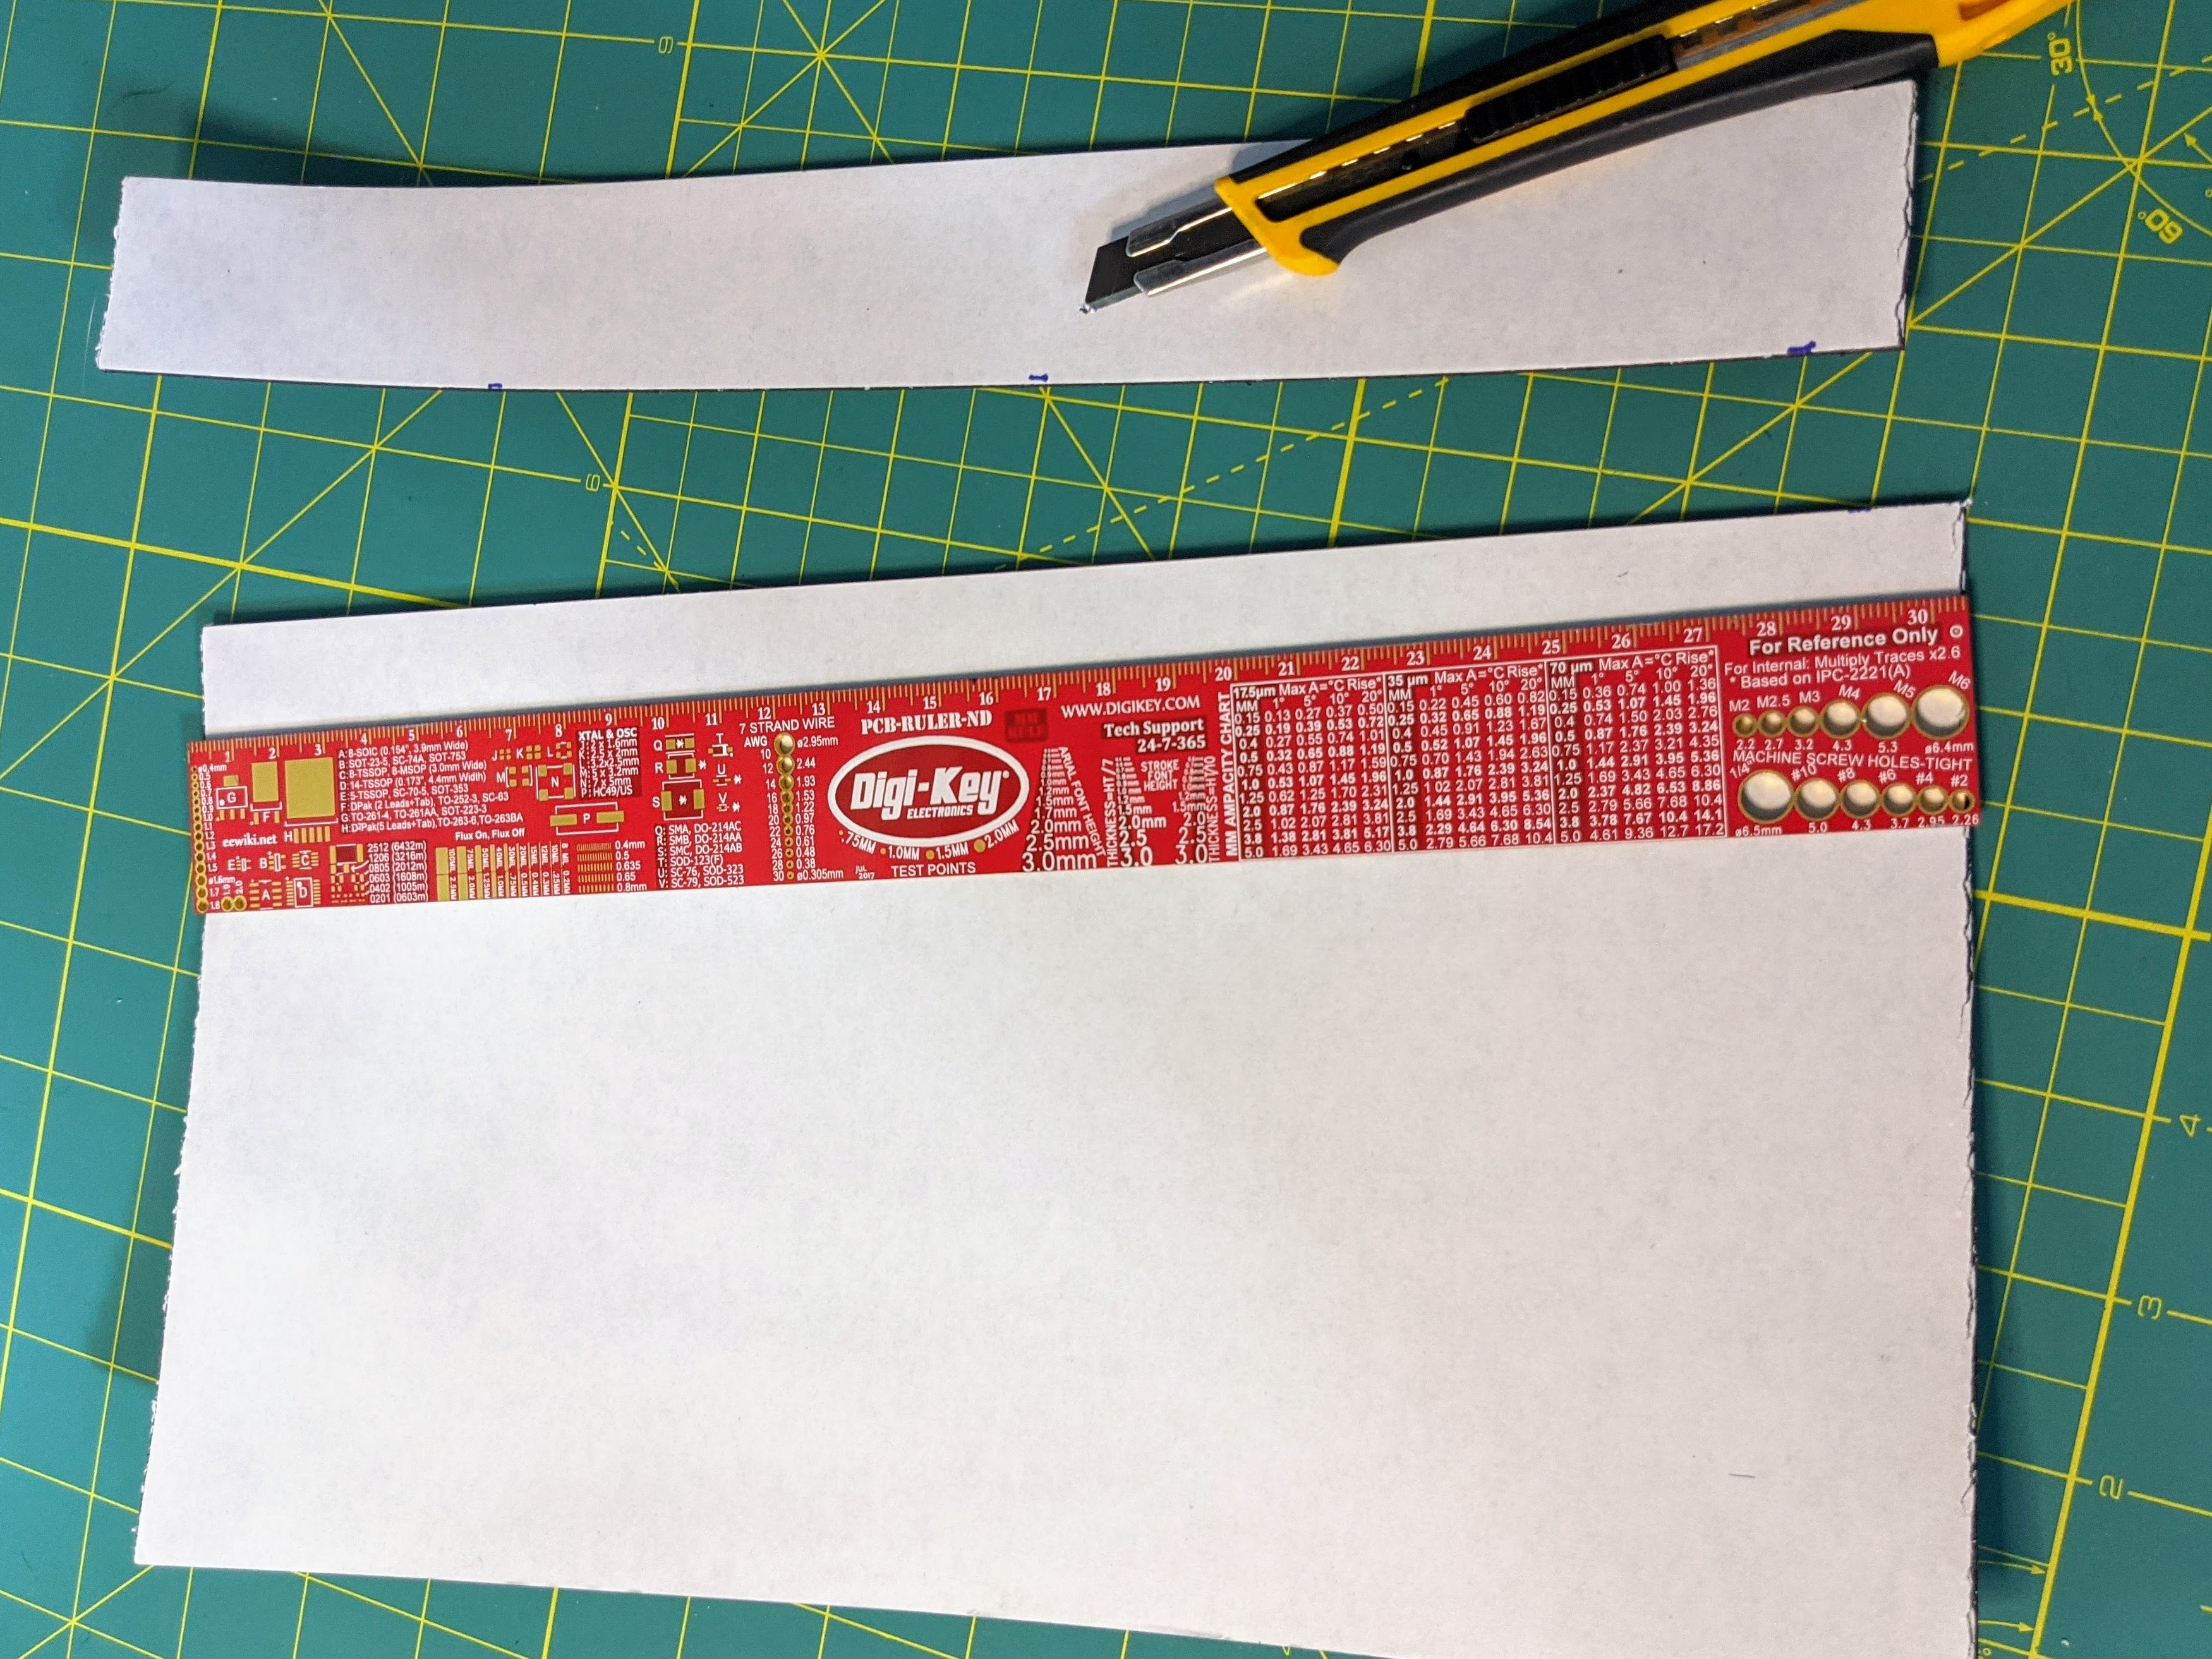 projects_led_strips_PXL_20210124_224010003.jpg